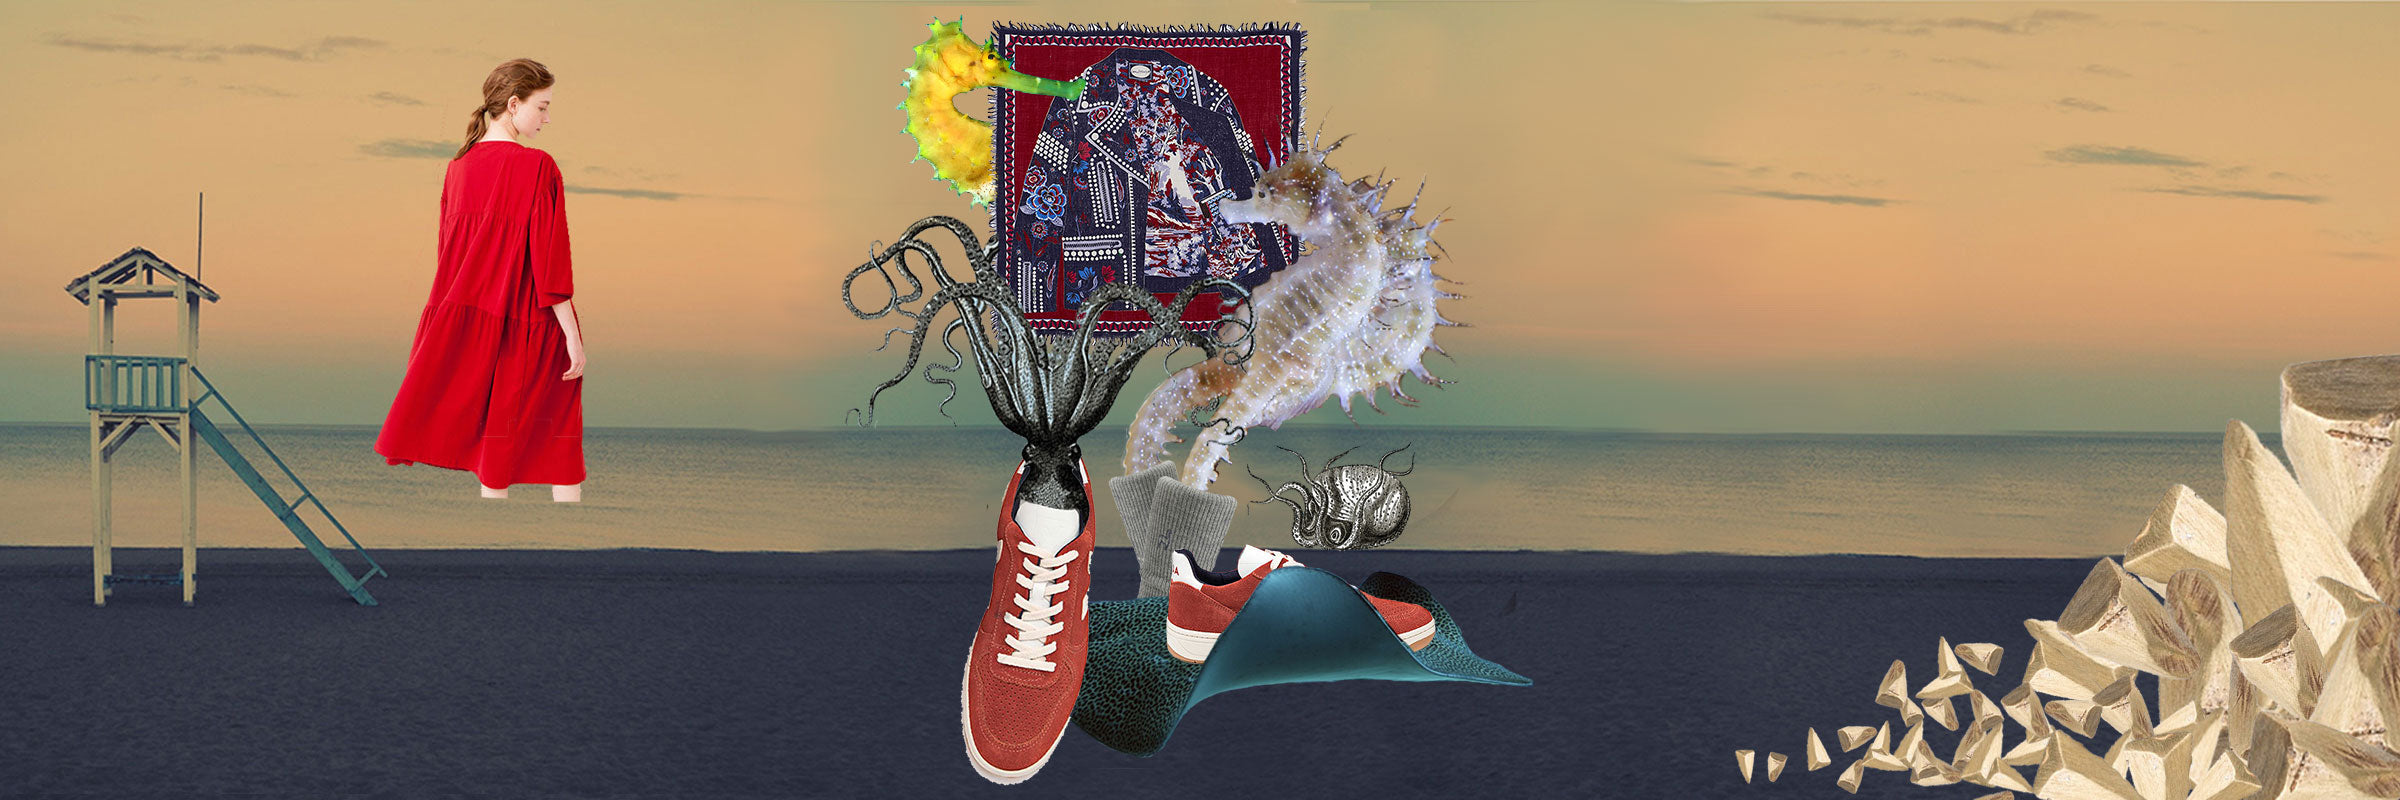 sustainable fashion collage sea monsters veja sneakers beach